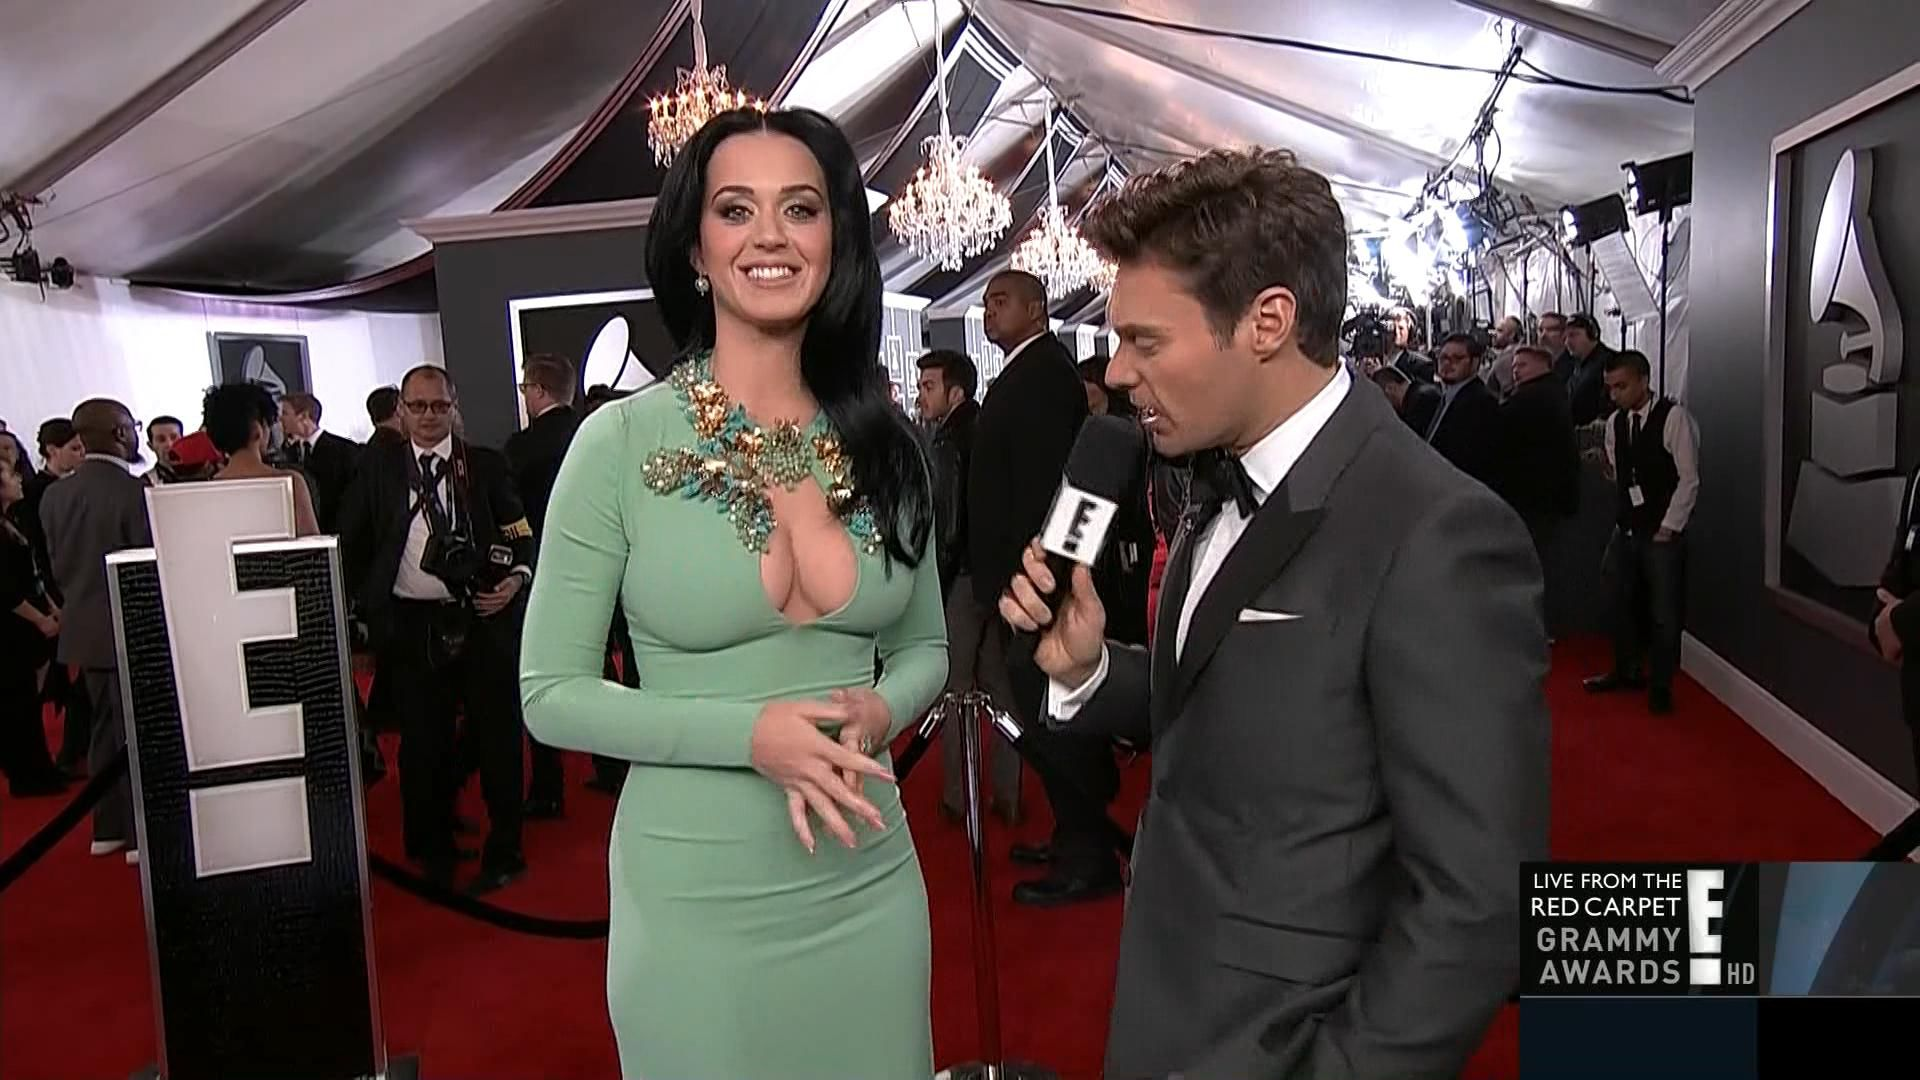 katy-perry-grammy-awards-2013-02